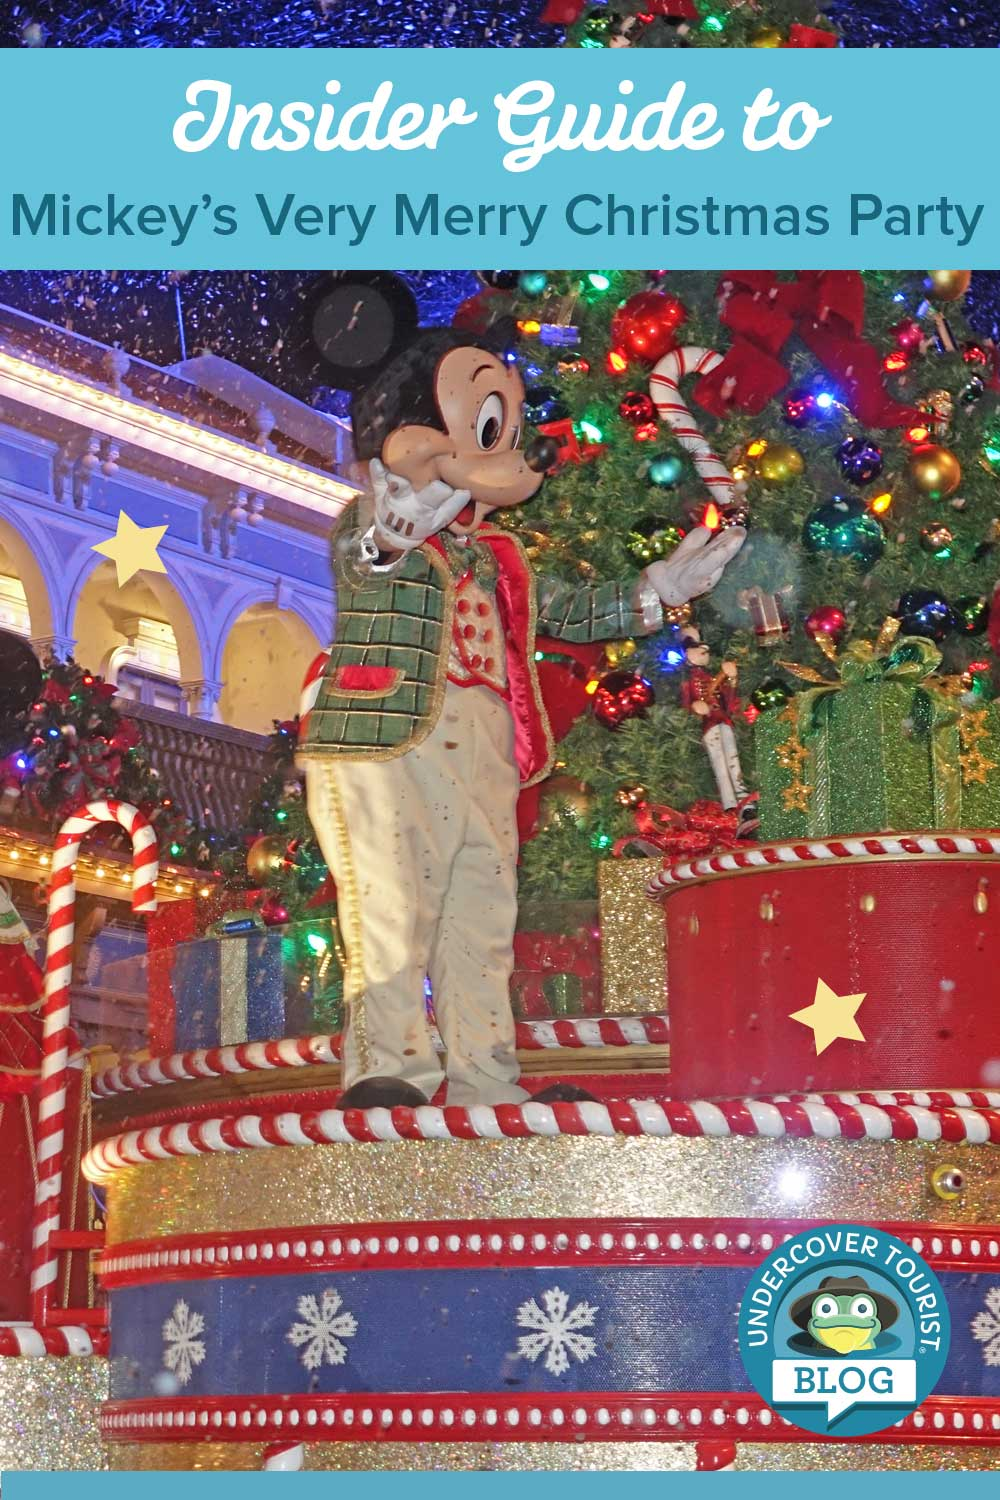 guide to mickeys very merry christmas party 2017 magic kingdom christmas party 2018 - Merry Merry Merry Christmas